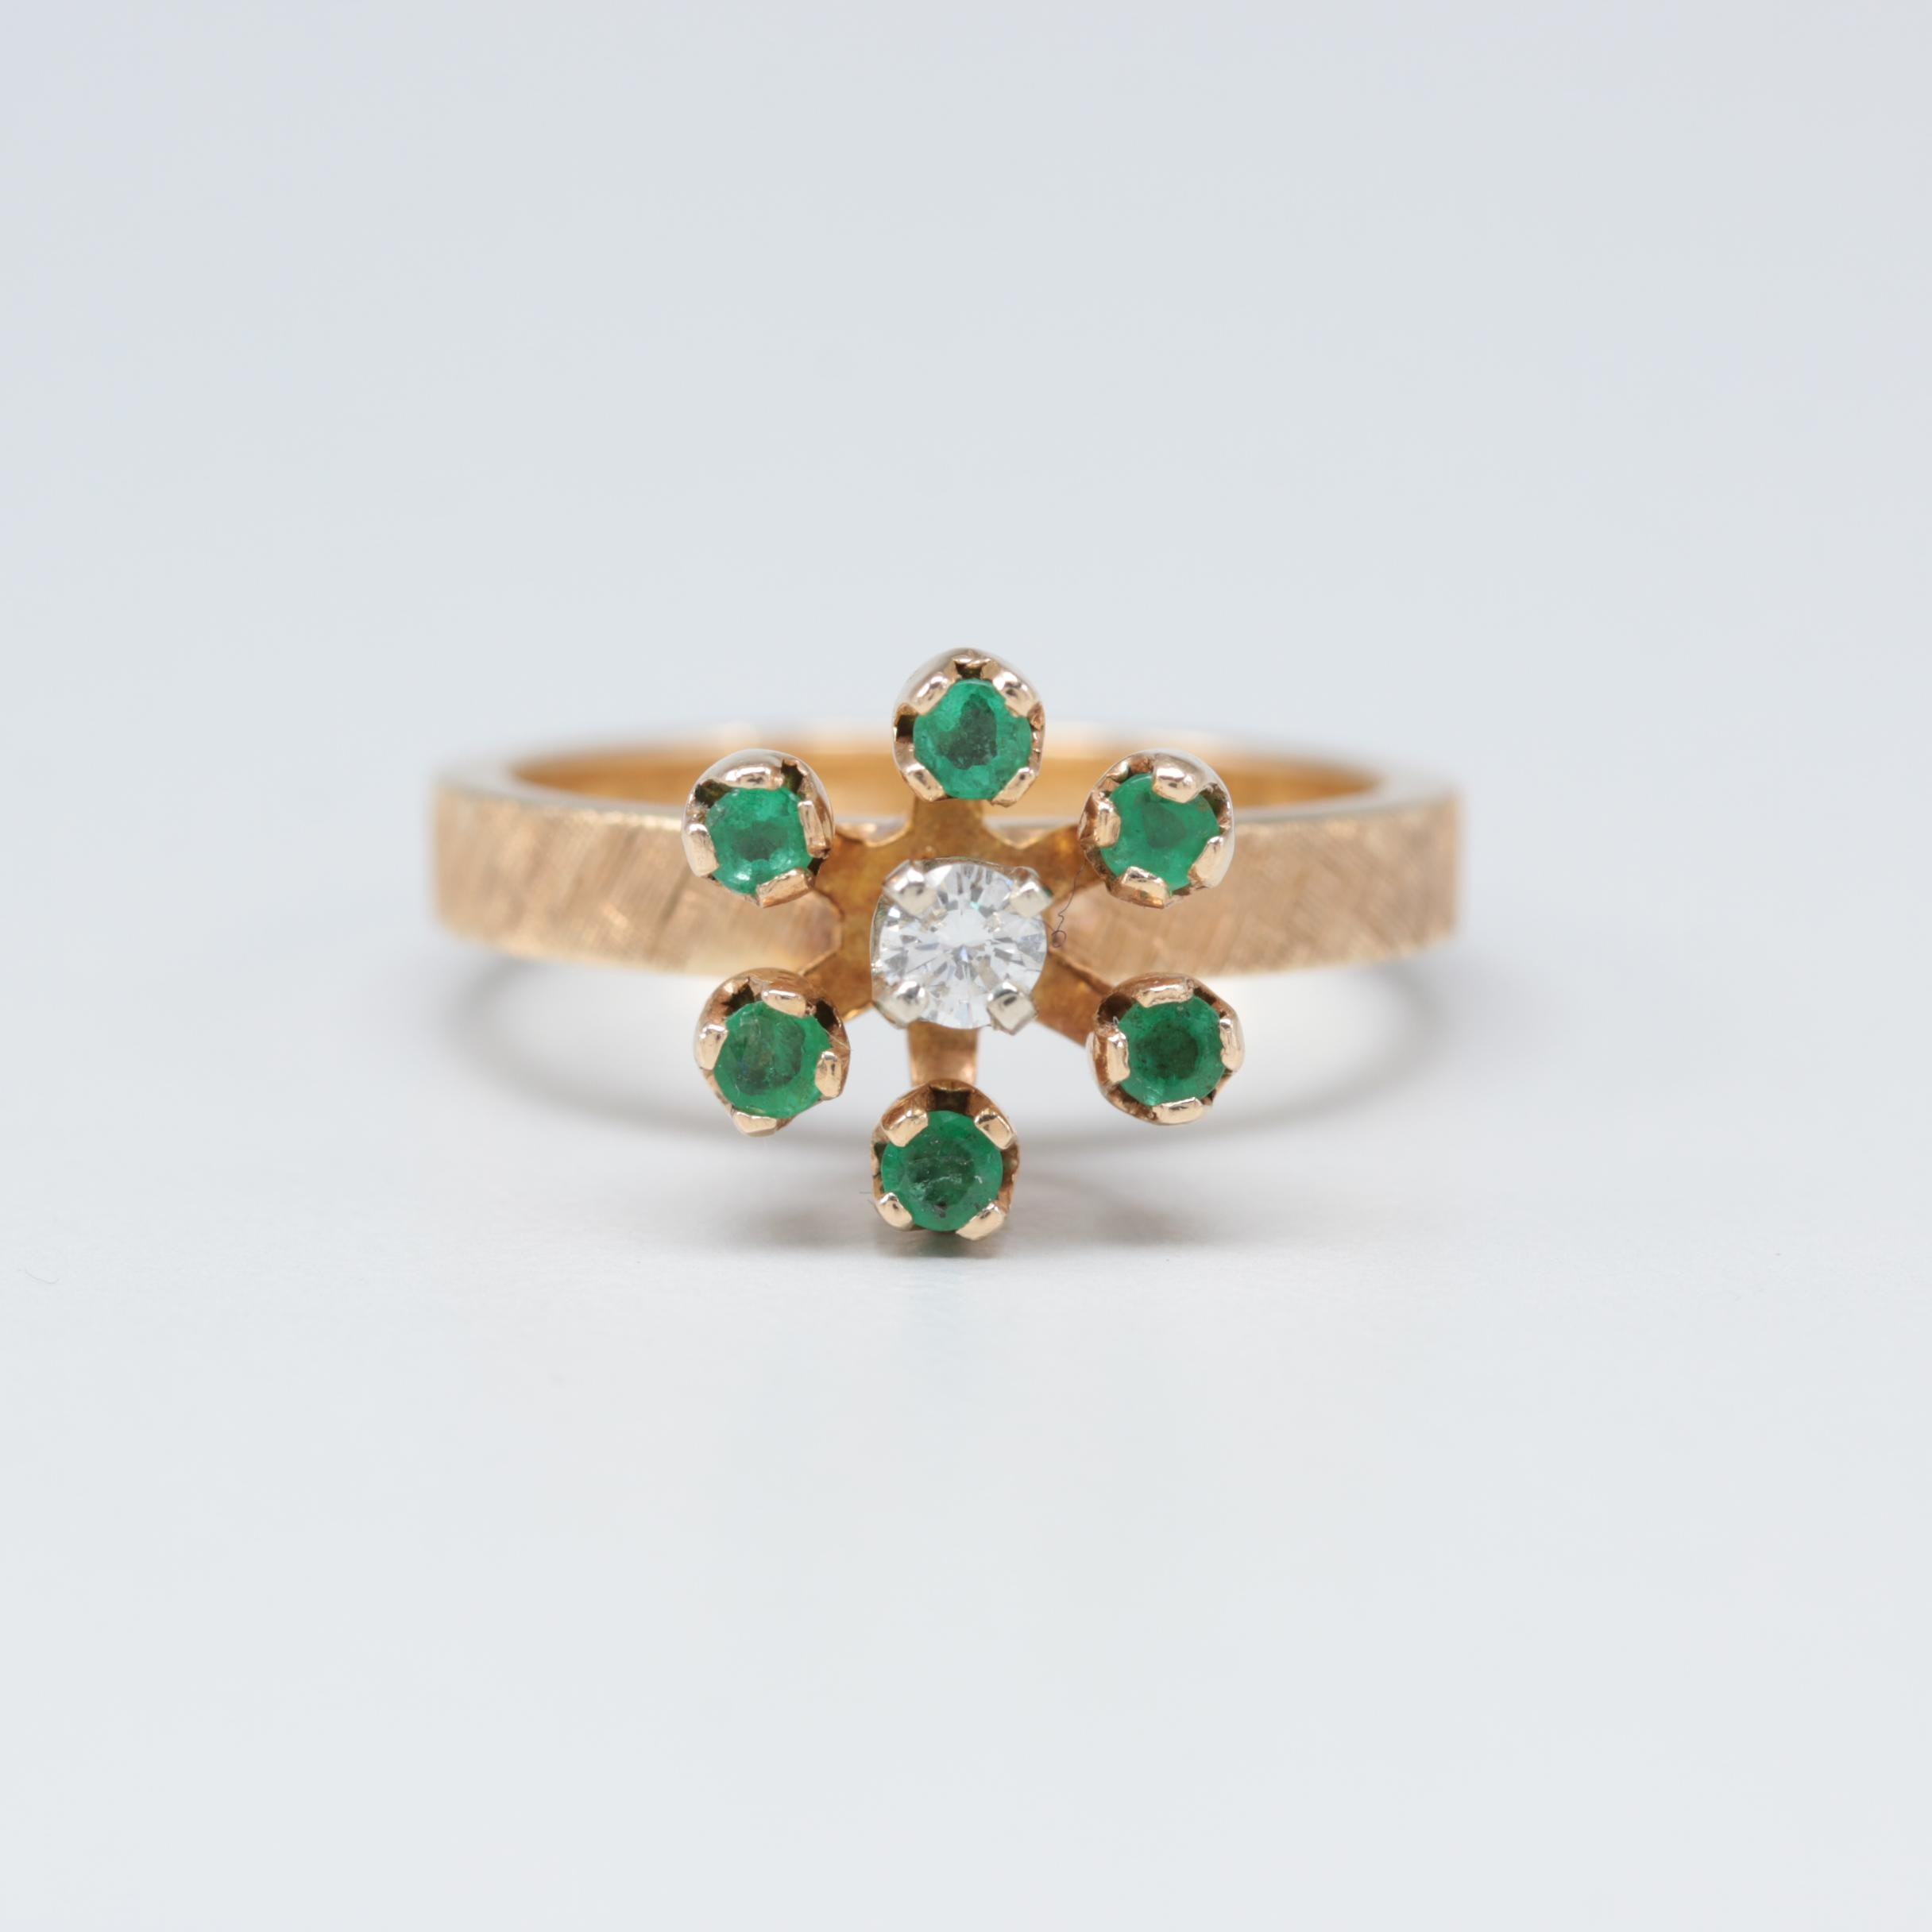 14K Yellow Gold Diamond and Emerald Floral Motif Ring